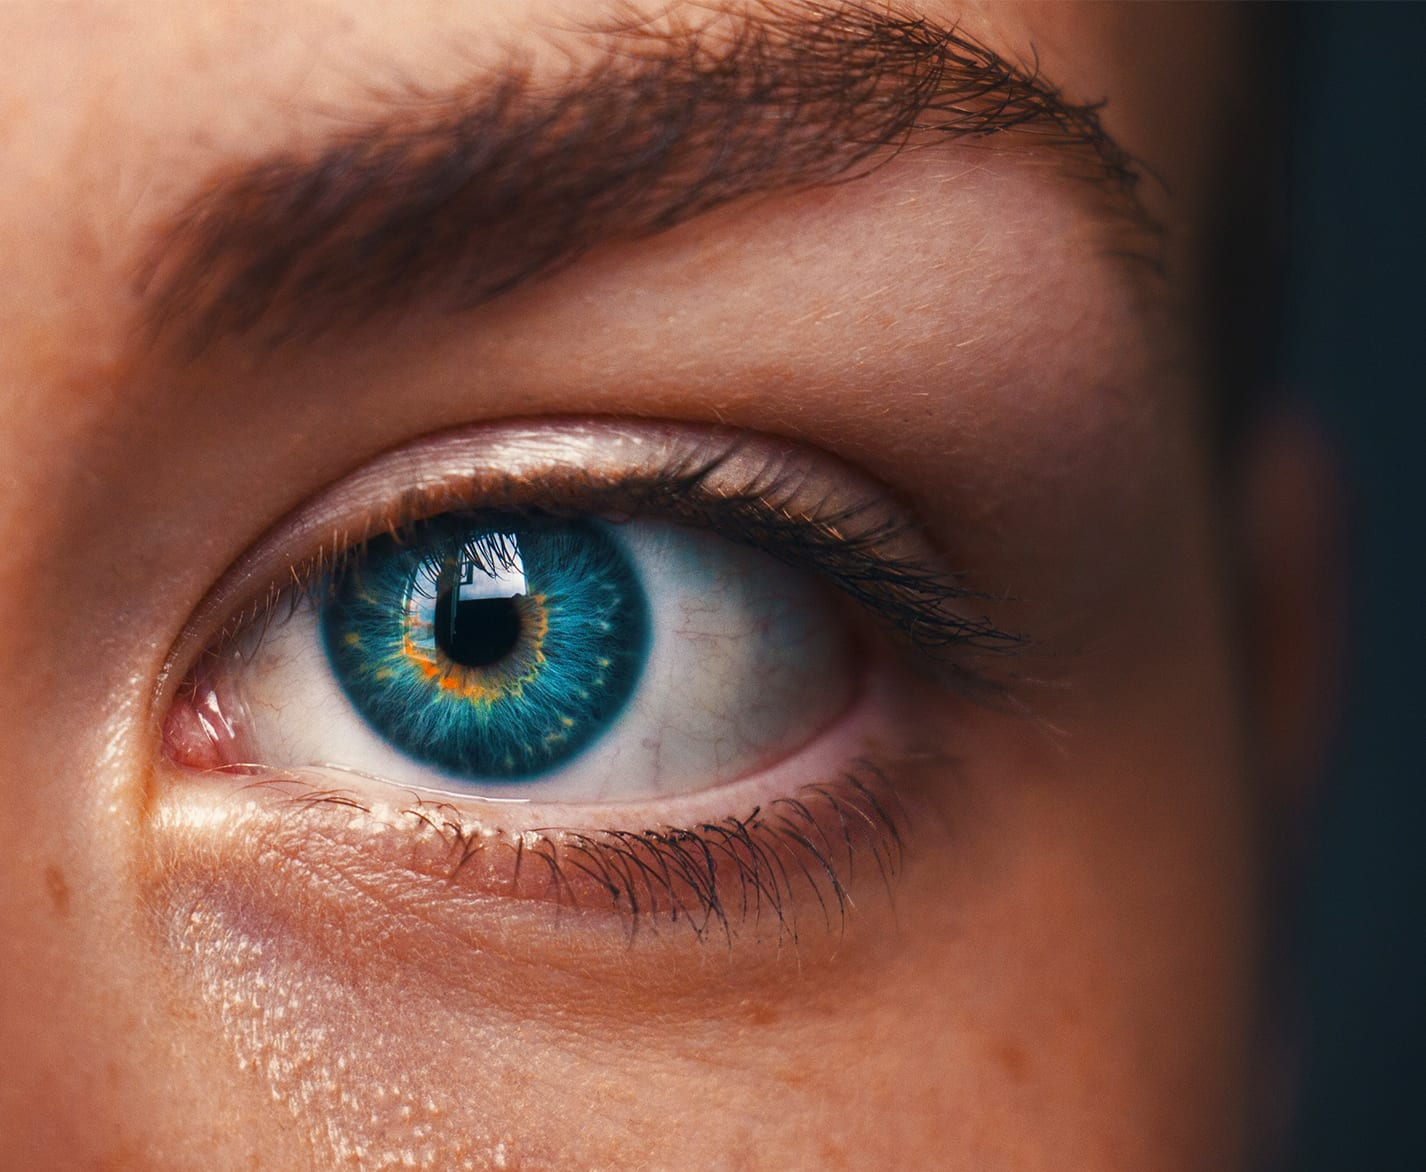 6 Things You Need to Know about Contact Lenses